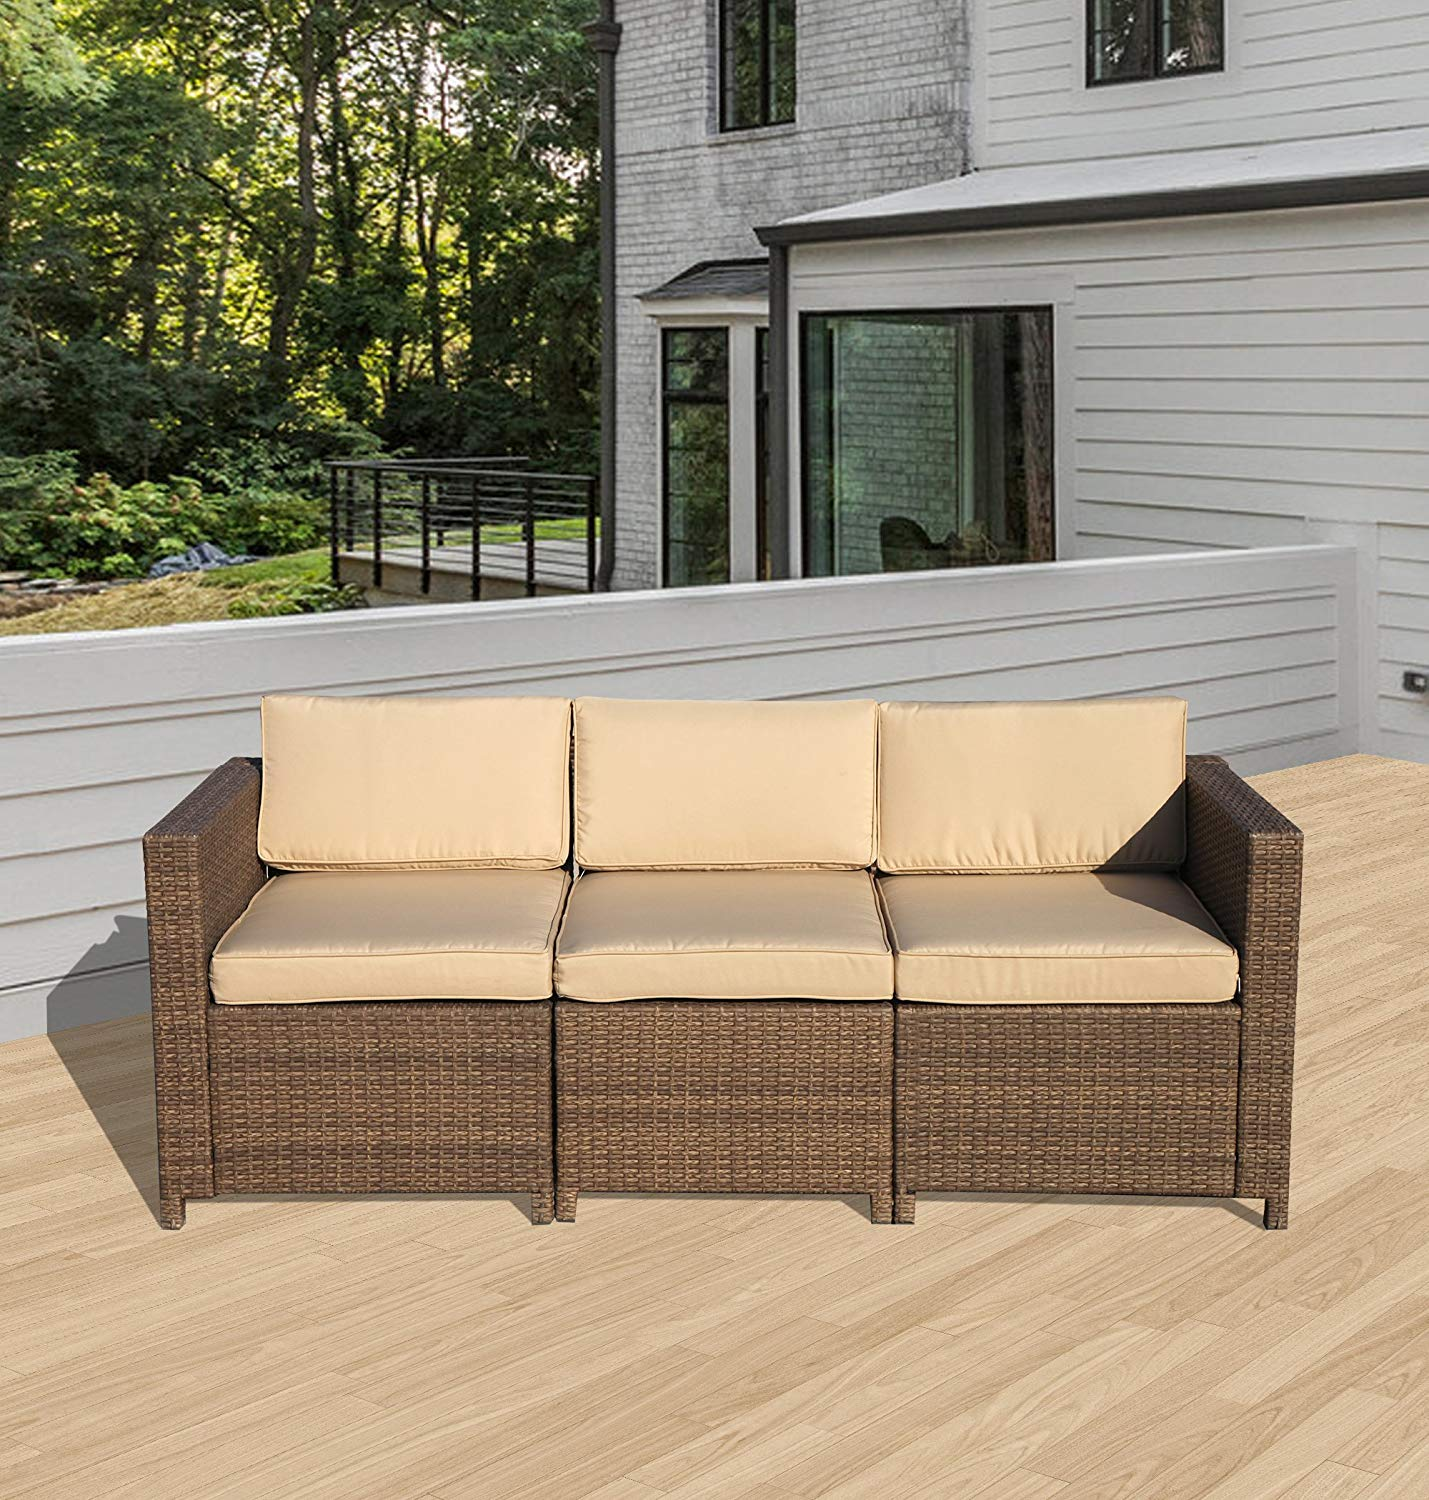 Patiorama Outdoor Furniture Wicker Sofa Couch 3 Piece Patio Furniture w/Steel Frame and Removable Cushions - Brown